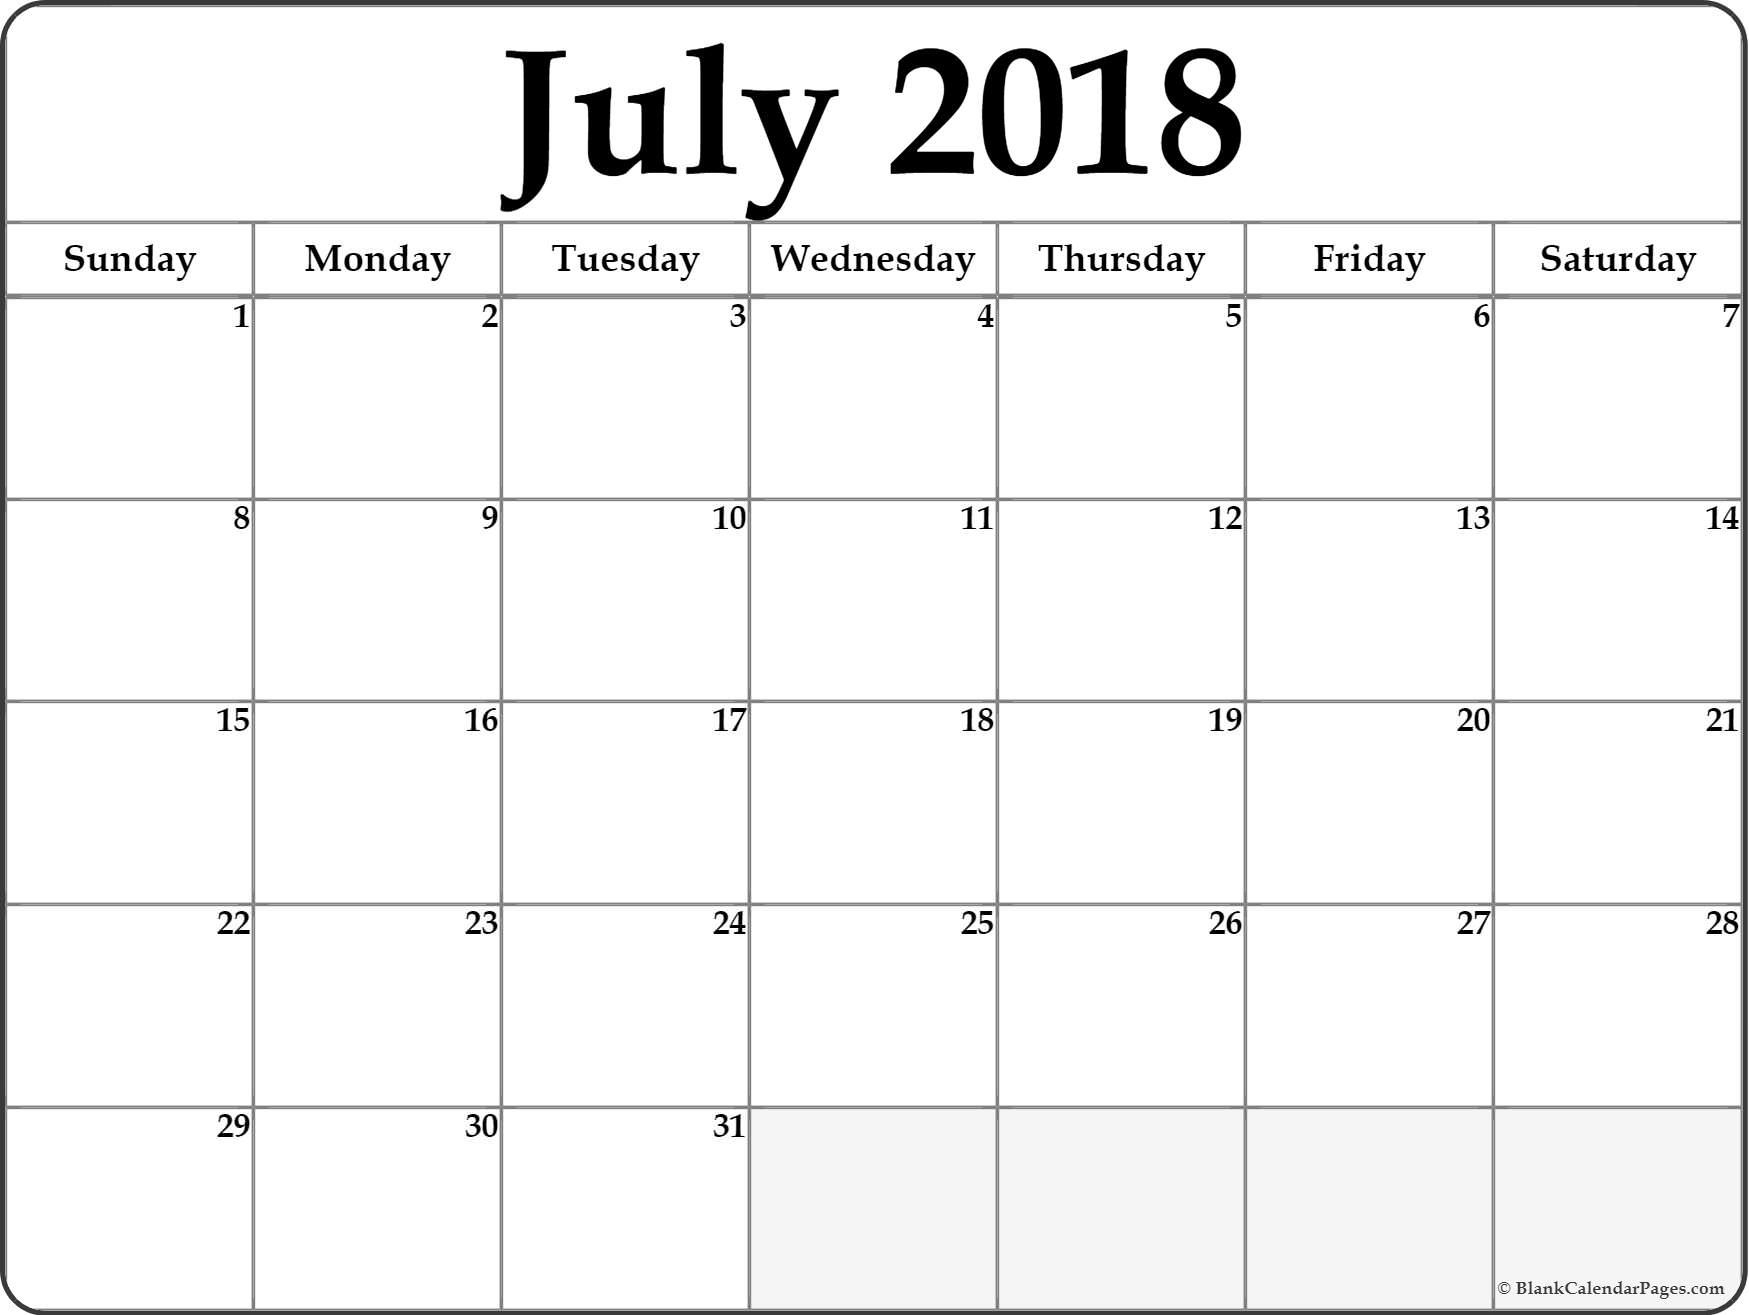 Pinmonthly Calendar On July Calendar 2018 | Printable Calendar inside Blank Printable Calendar Pages Aug